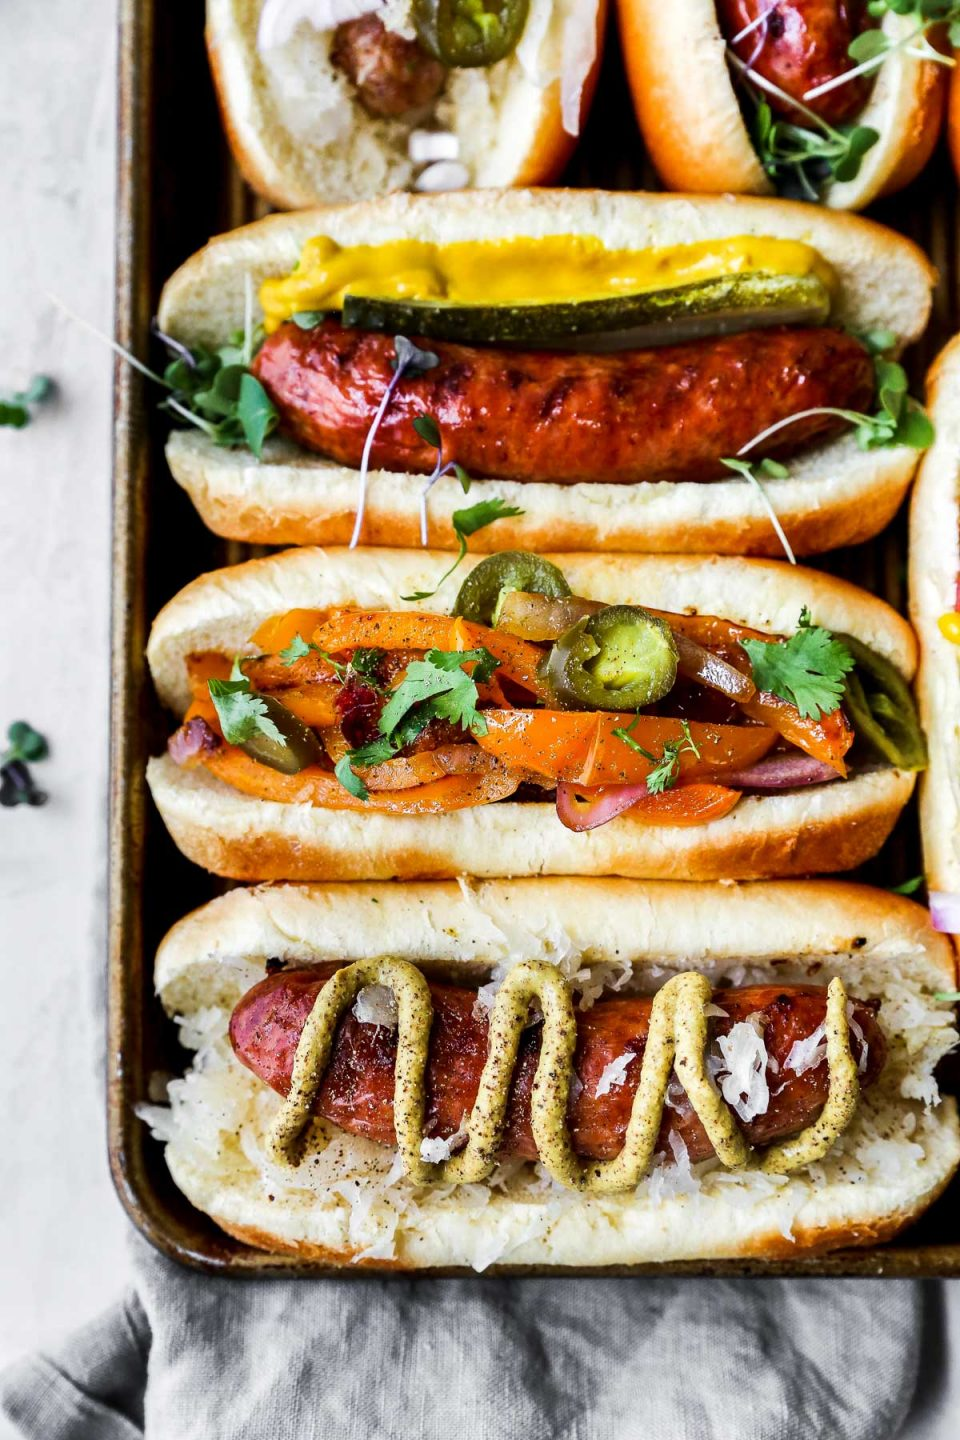 Grilled sausage on a small baking sheet. The sausages are served on buns with a variety of toppings (mustard, pickled veggies, etc.). The baking sheet is on a white surface with a grey linen napkin.